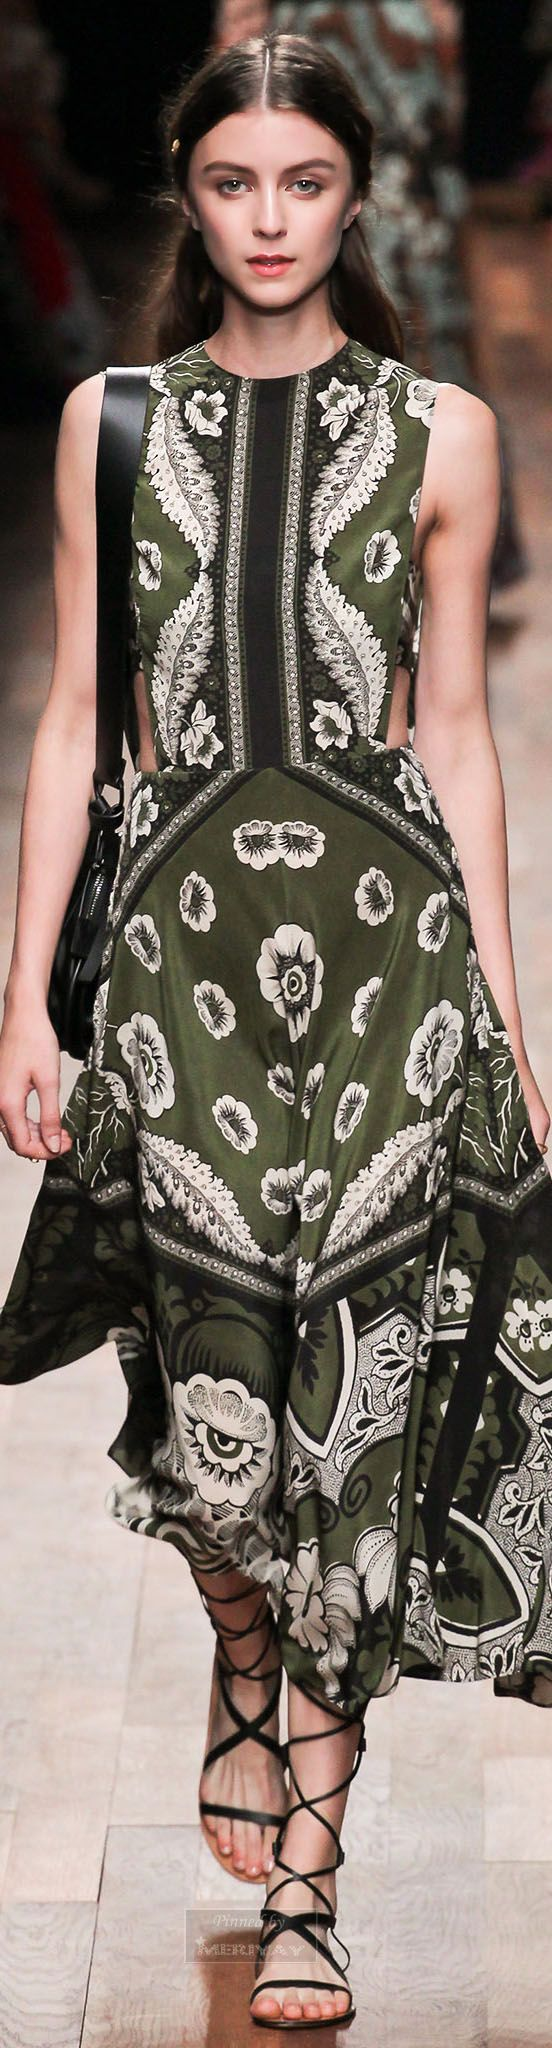 Valentino.Spring 2015...right color tho a bit concerned about hard contast ... Still bugging my eye, considering moving